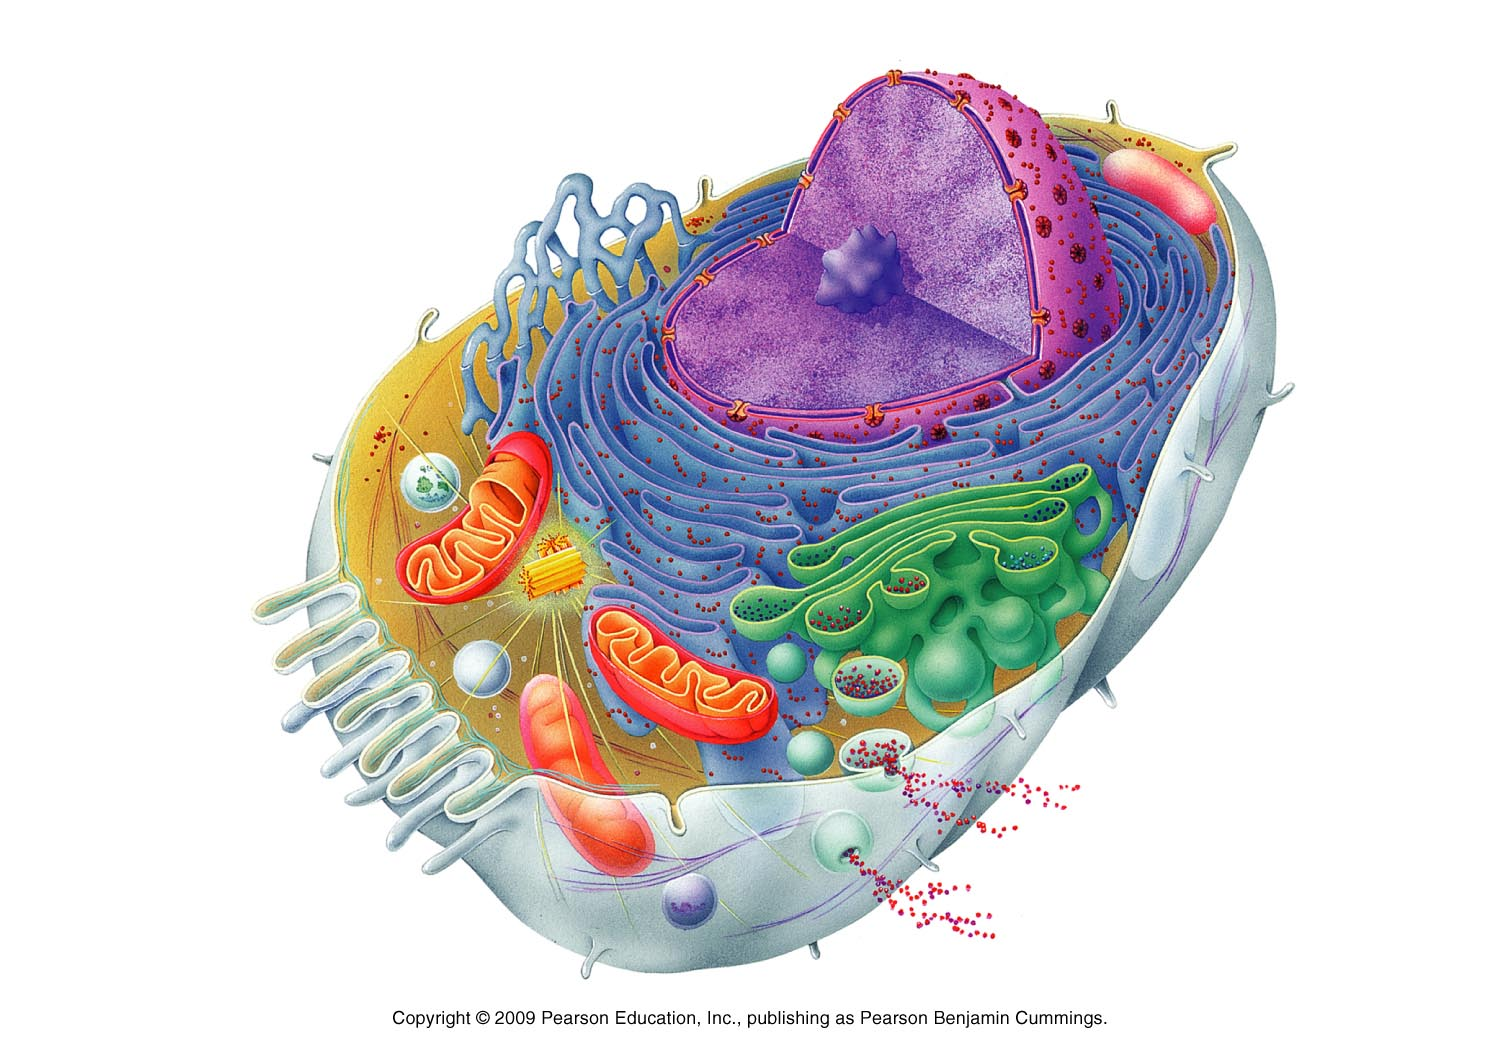 Subject matter cellular biology